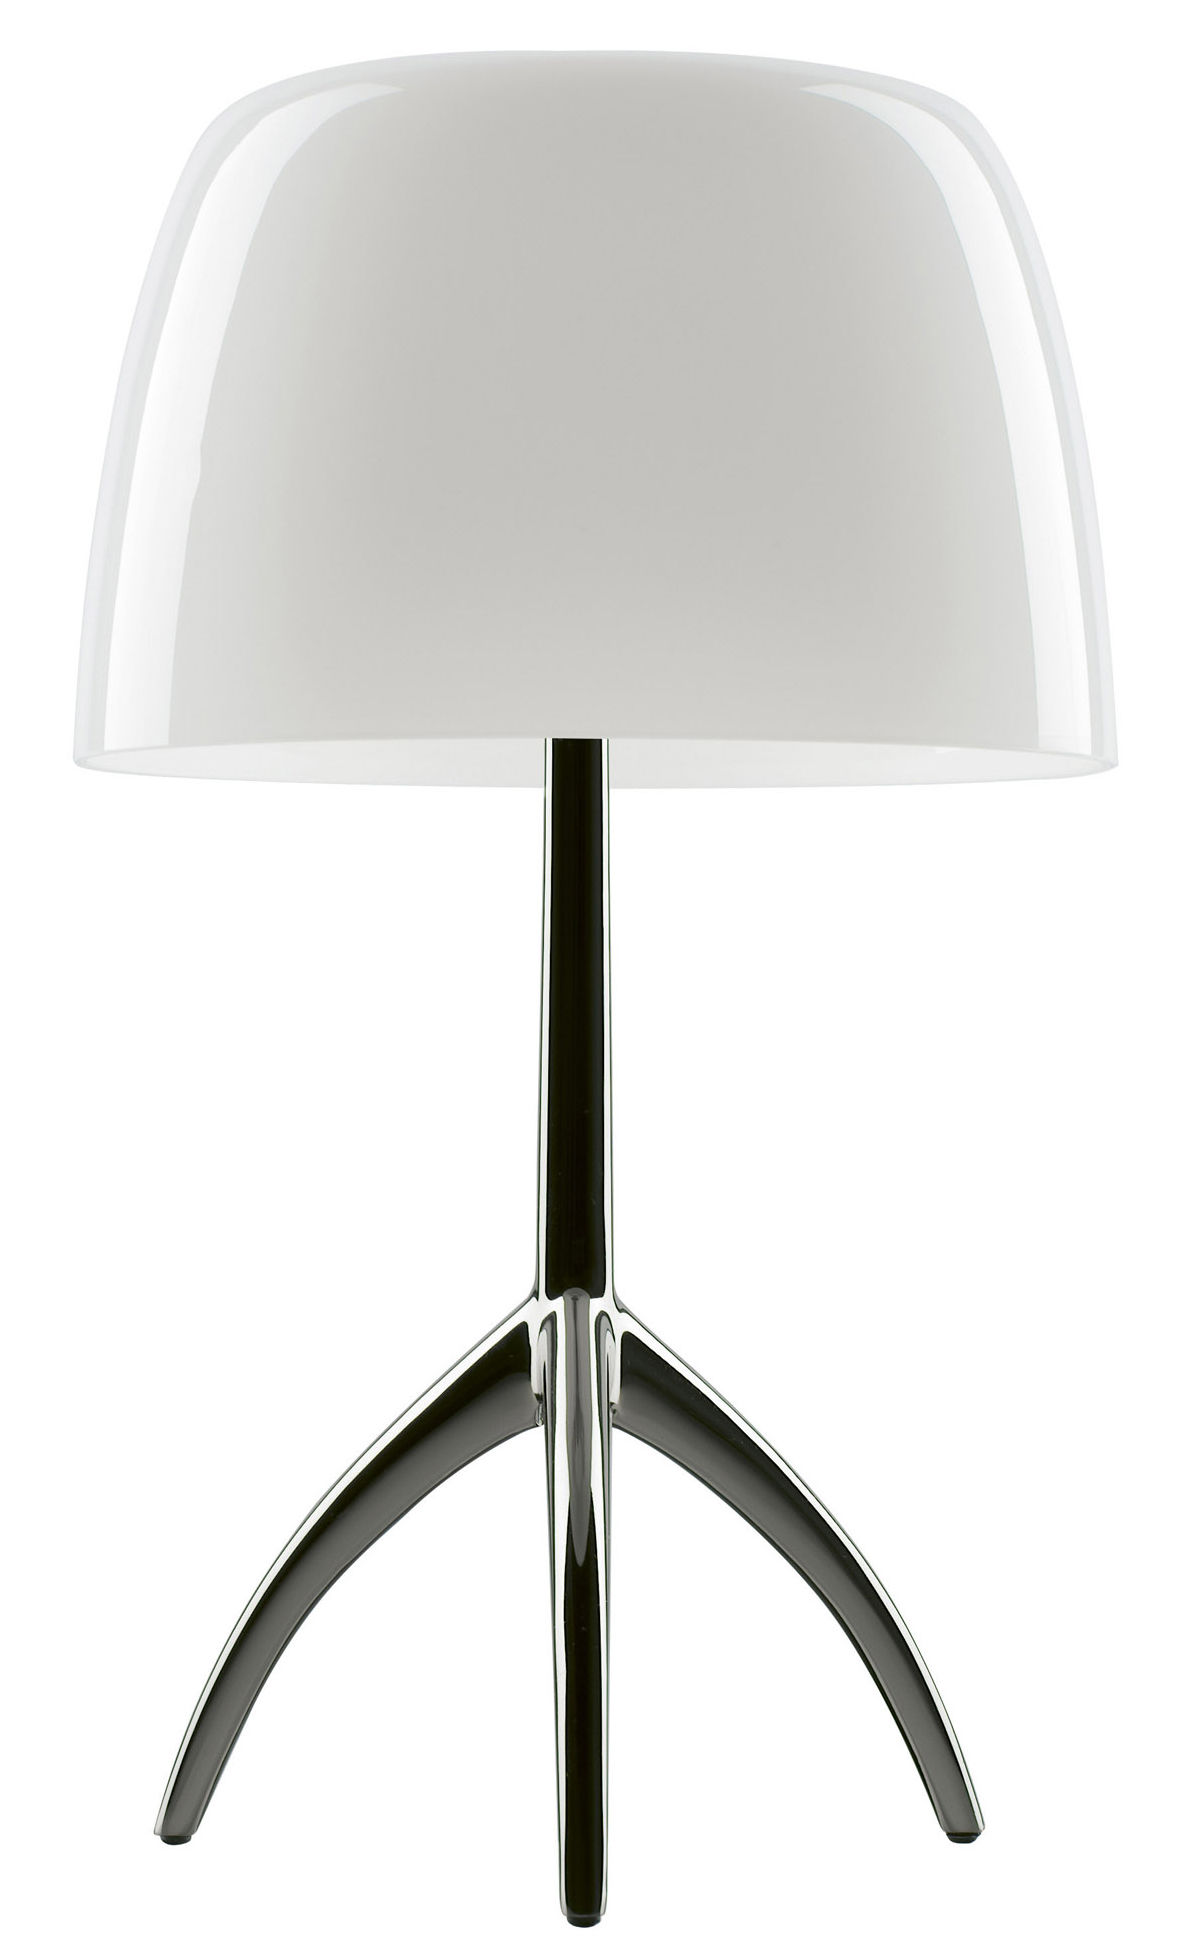 Lighting - Table Lamps - Lumière Grande Table lamp - With dimmer - H 45 cm by Foscarini - Warm white / Black chrome leg - Blown glass, Varnished aluminium